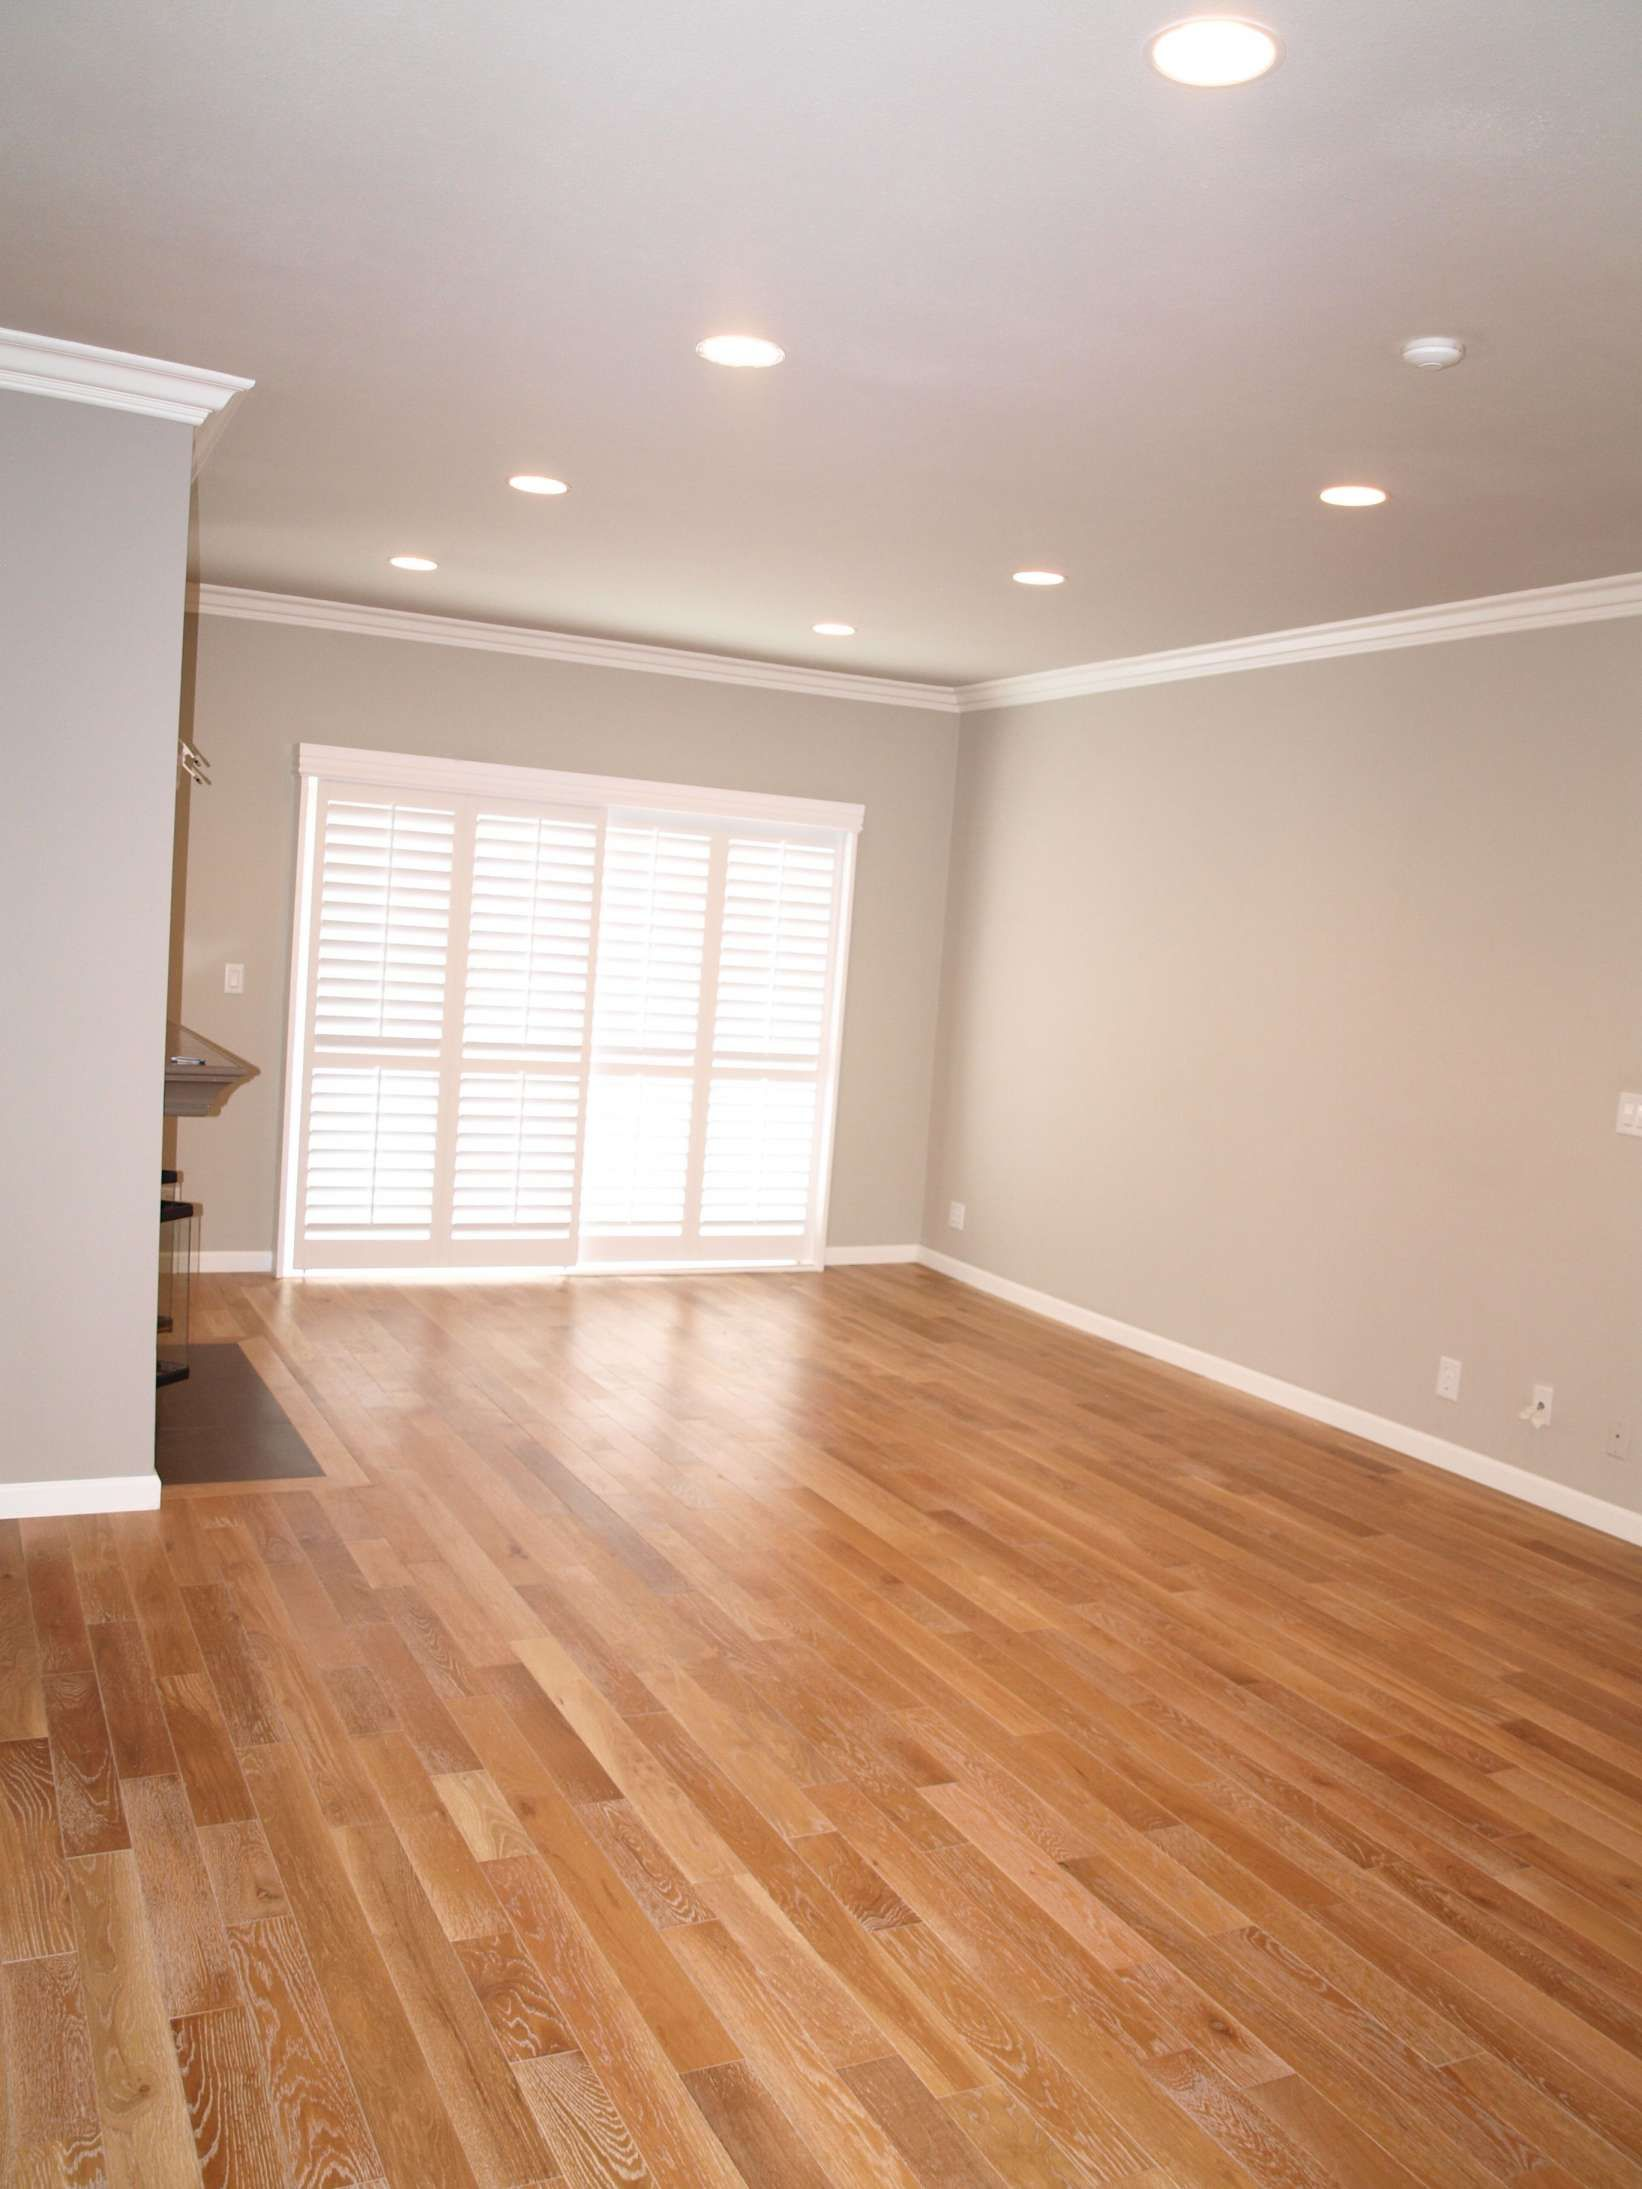 9 excellent paint colors for living room with wood floors on best color to paint living room walls id=21706